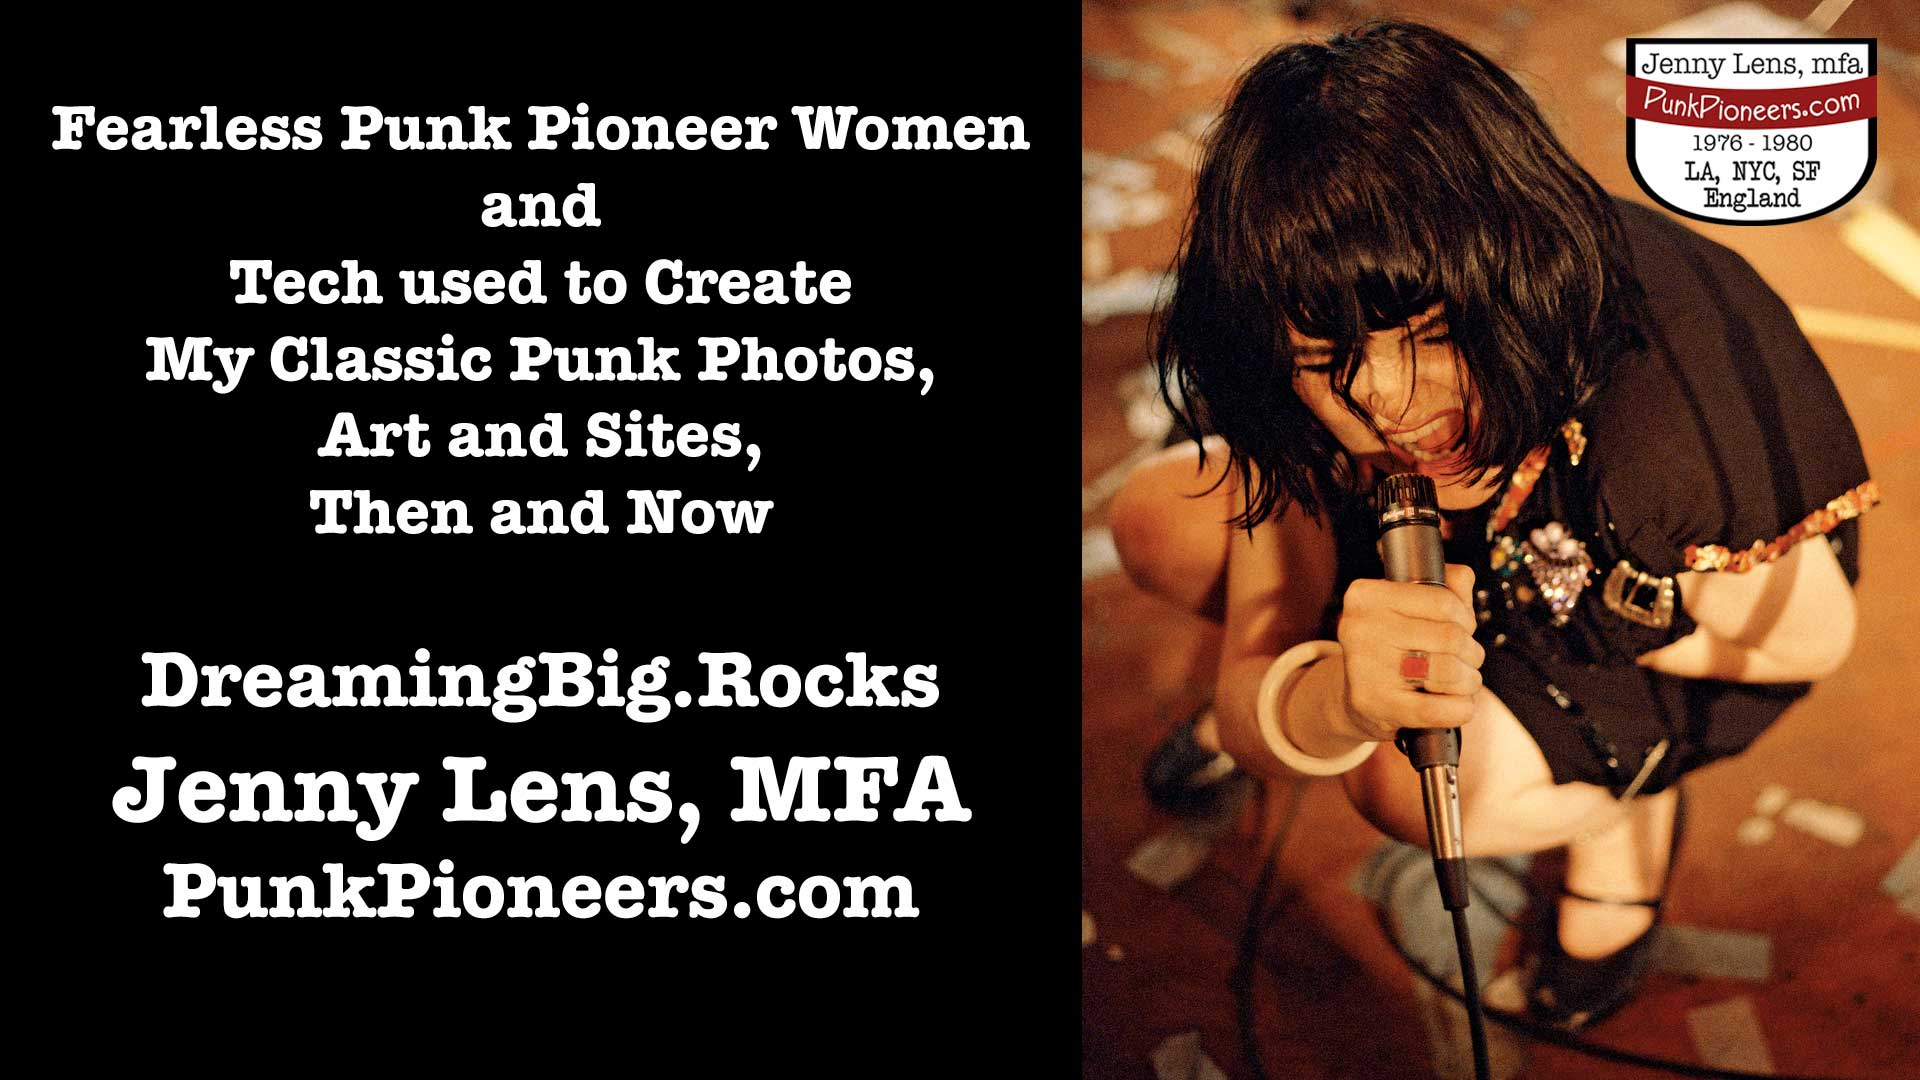 Fearless Punk Pioneers Women and the Tech I used to Create My Archive and Sites, Then and Now